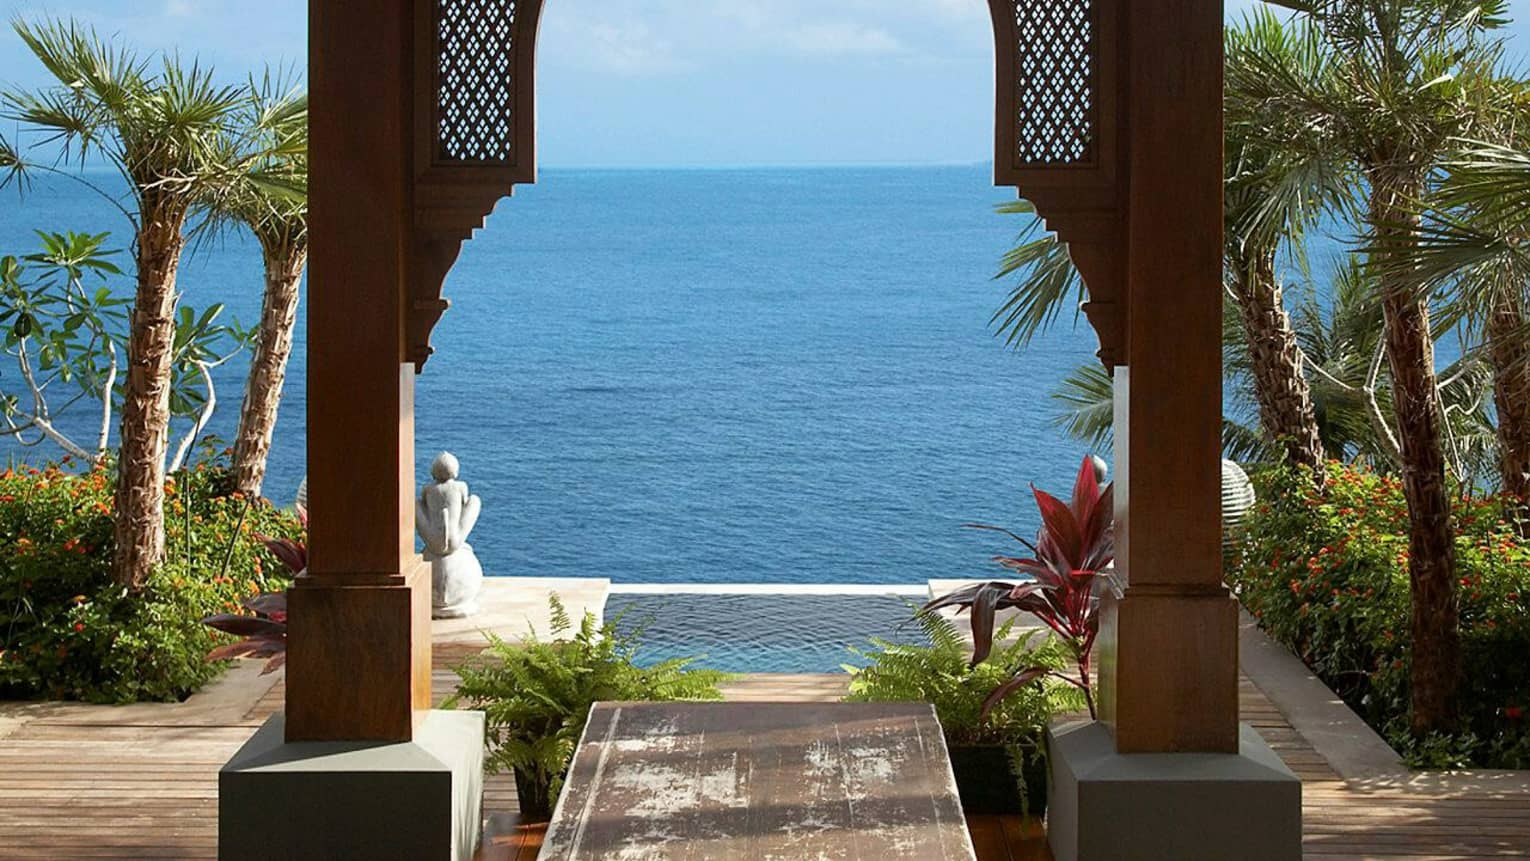 Wood archway, pool palms and ocean under blue sky